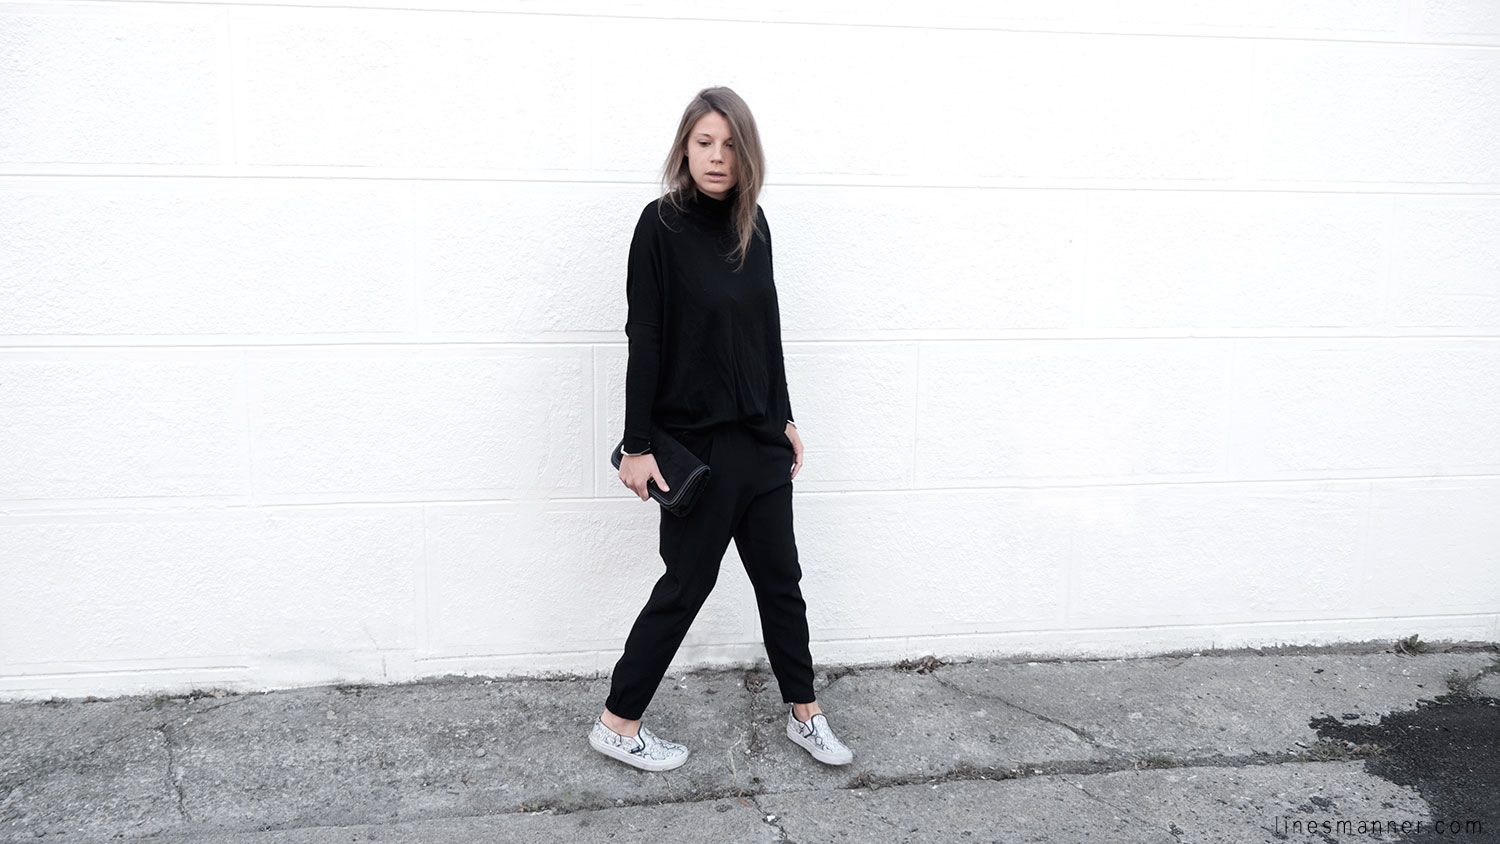 Lines-Manner-Minimalism-Details-Black-All_black_everything-Simplicity-Timeless-Modern-Monochrome-Essential-Basics-Staples_pieces-Outfit-Design-Effortless-7